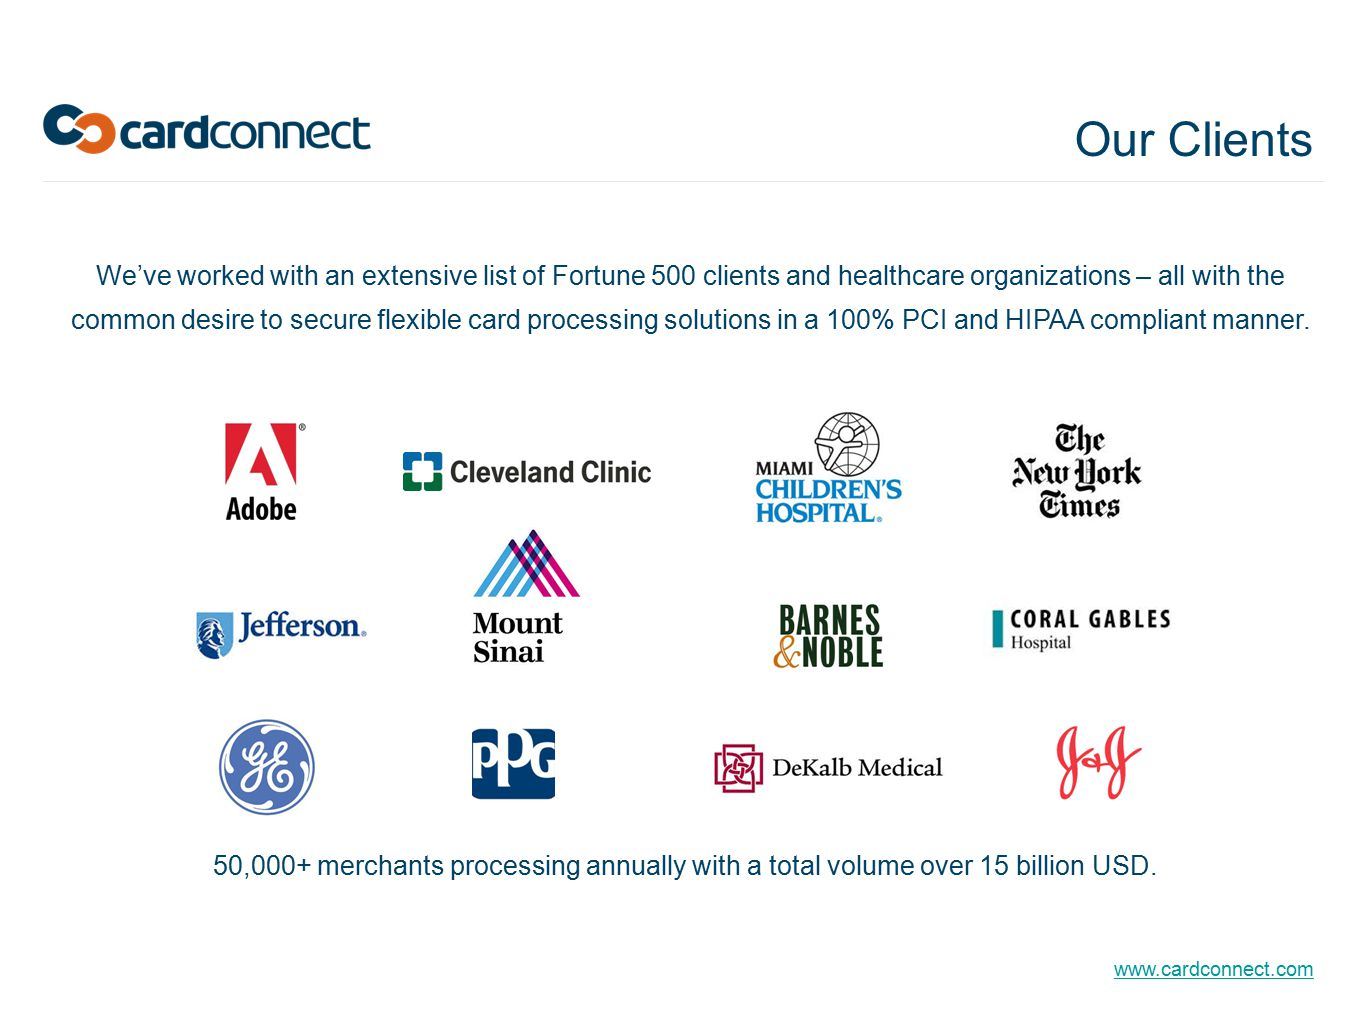 www.cardconnect.com We've worked with an extensive list of Fortune 500 clients and healthcare organizations – all with the common desire to secure flexible card processing solutions in a 100% PCI and HIPAA compliant manner.